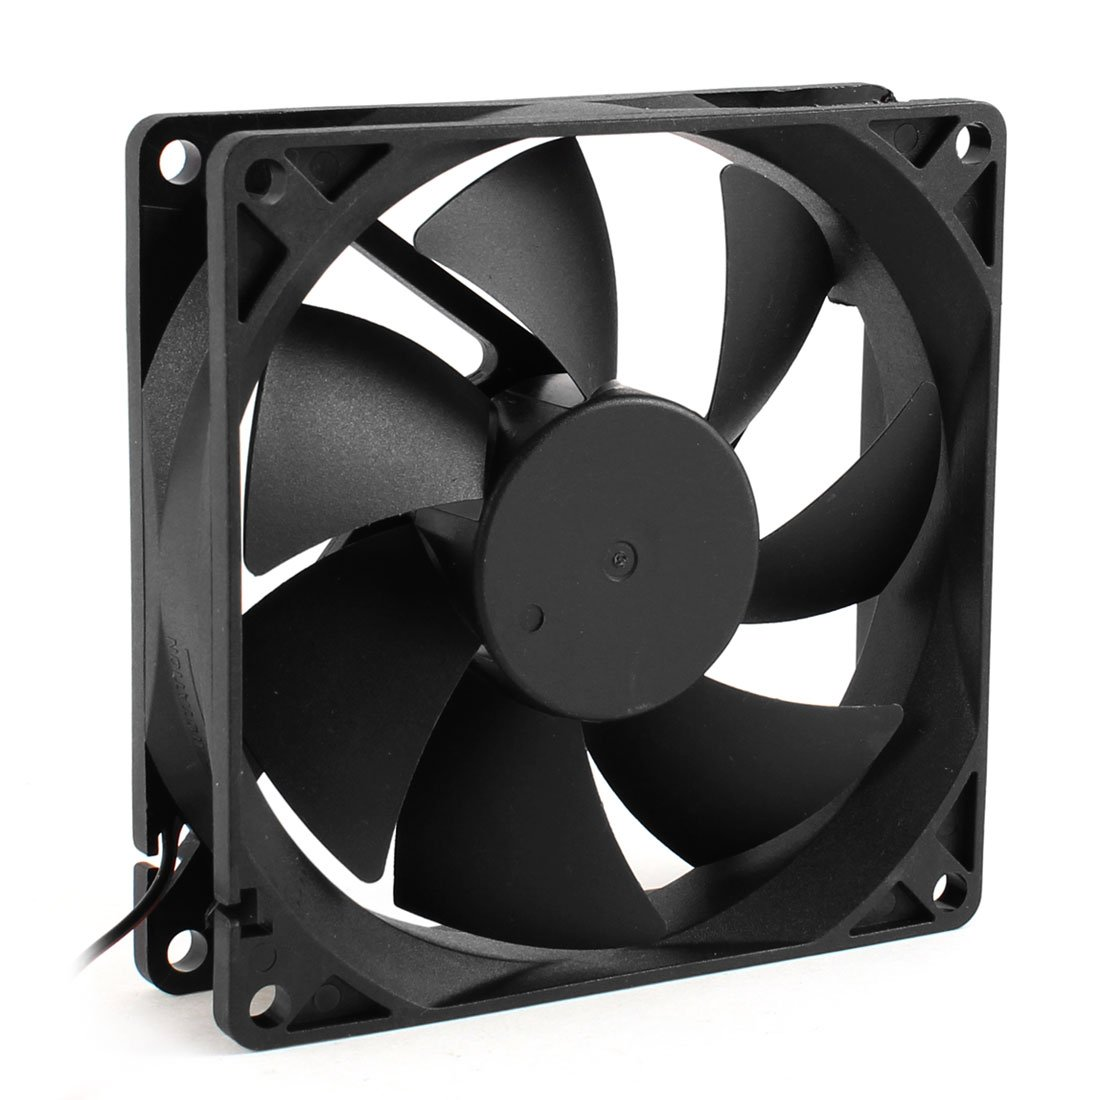 CAA Hot 92mm x 25mm 24V 2Pin Sleeve Bearing Cooling Fan for PC Case CPU Cooler personal computer graphics cards fan cooler replacements fit for pc graphics cards cooling fan 12v 0 1a graphic fan